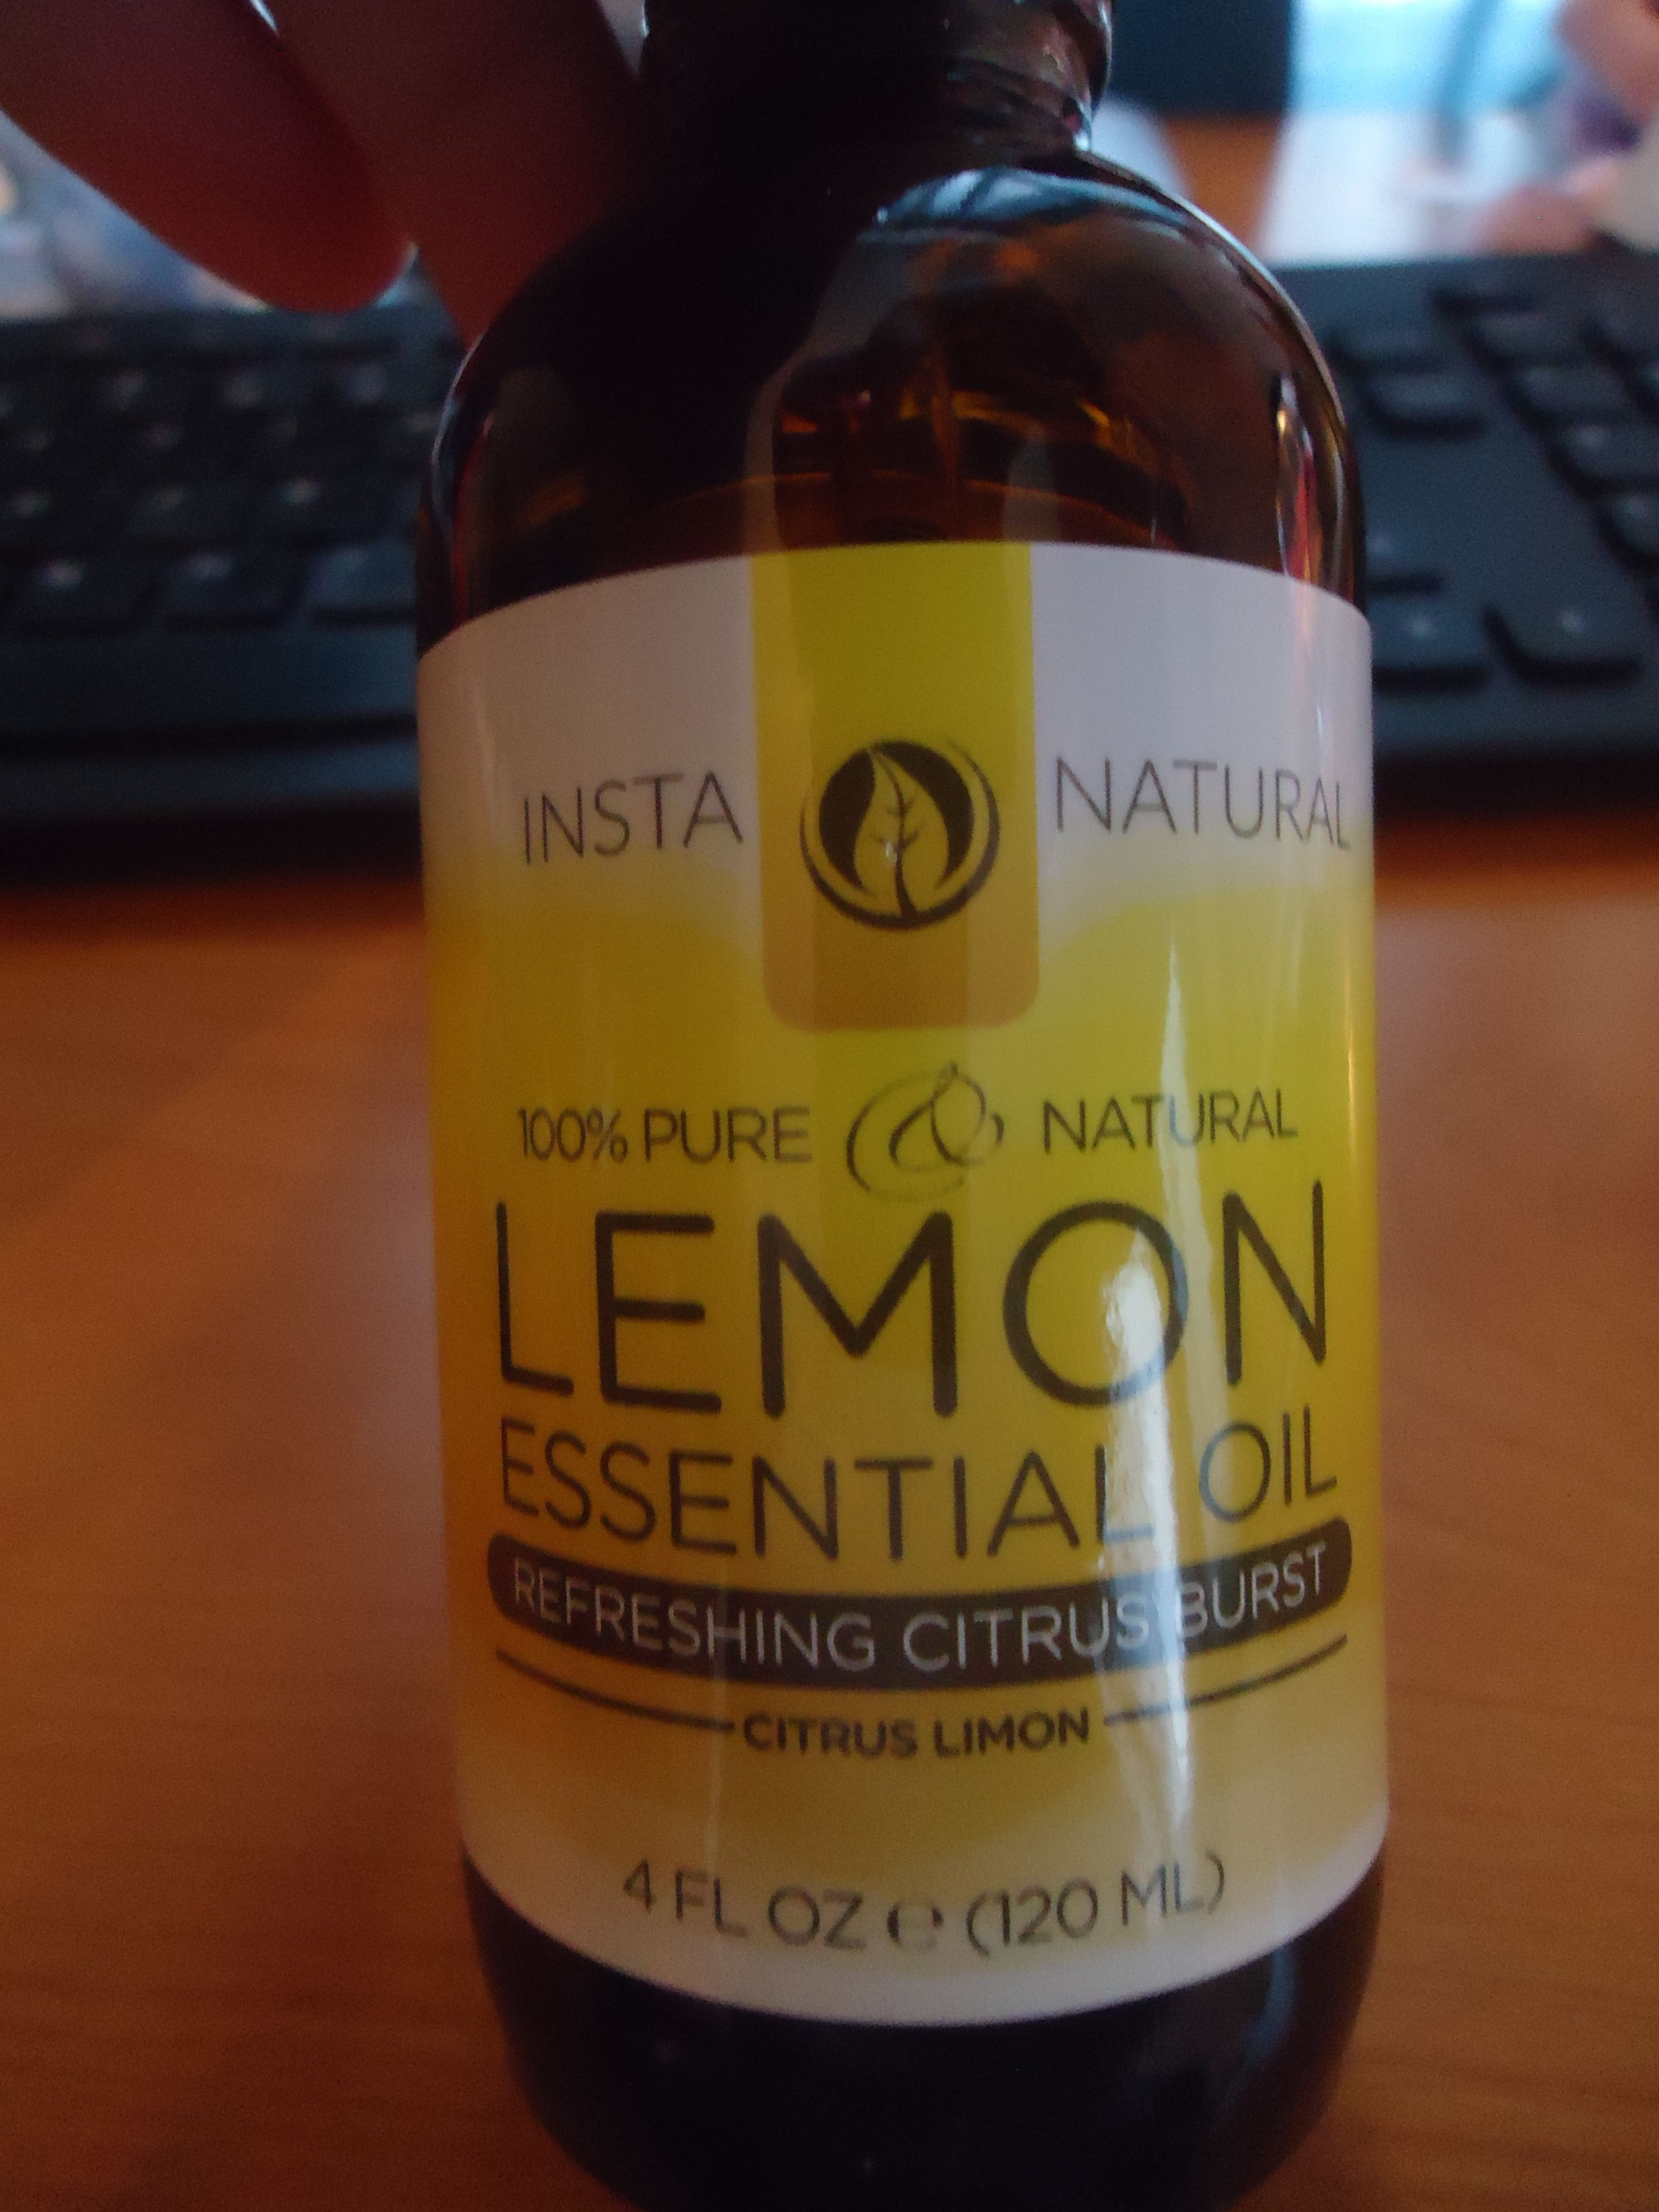 Lemon & Peppermint Essential Oils  As long as I can remember I always heard people suggesting and using Aromatherapy and Essential Oils for everything from health, cleaning and relaxation...